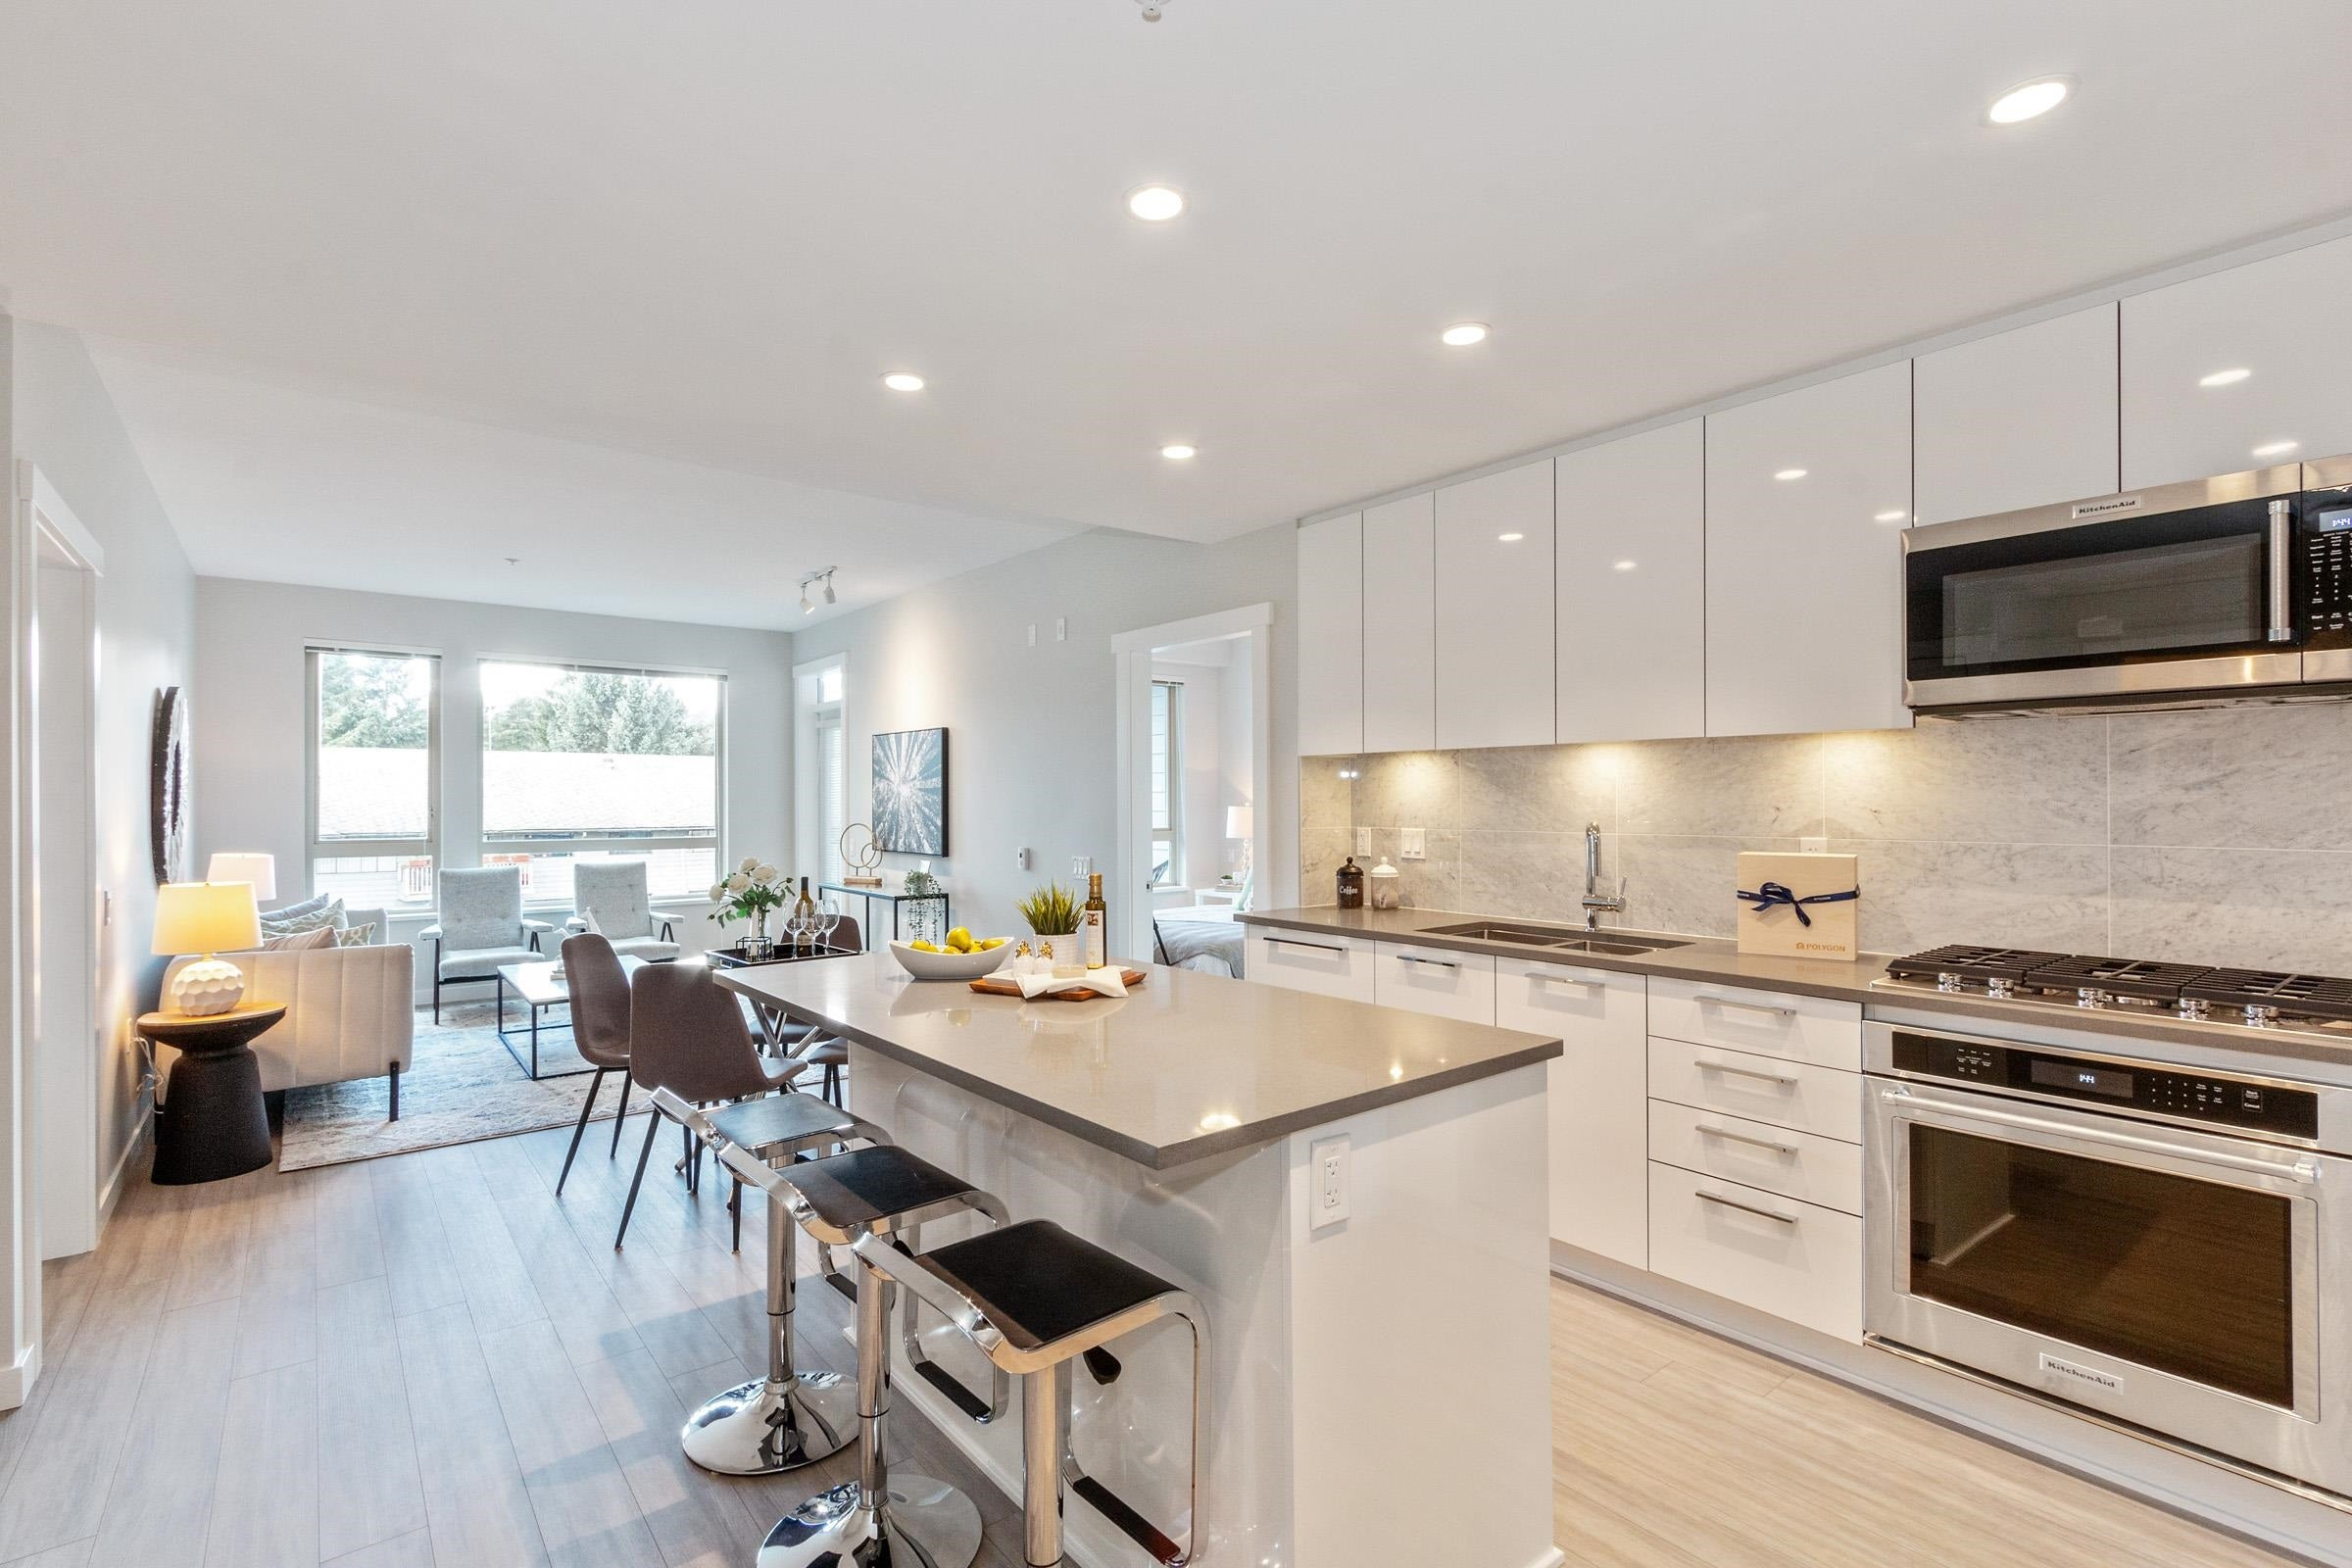 316 2651 LIBRARY LANE - Lynn Valley Apartment/Condo for sale, 2 Bedrooms (R2622878) - #10